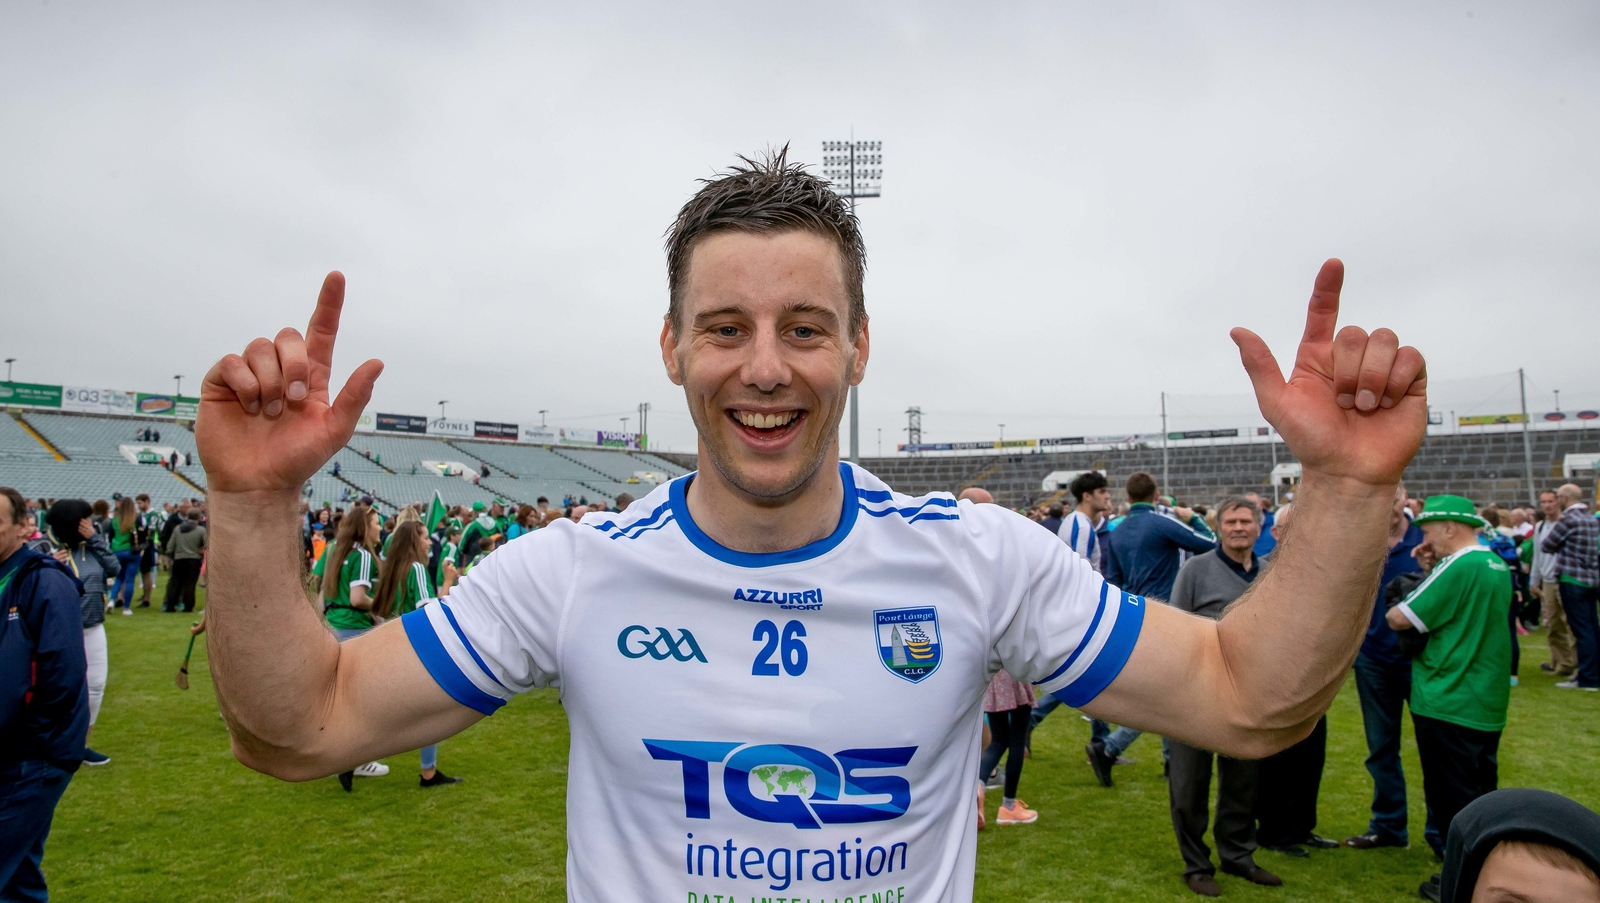 Image - Dan Morrissey celebrates the Munster round-robin win over Waterford